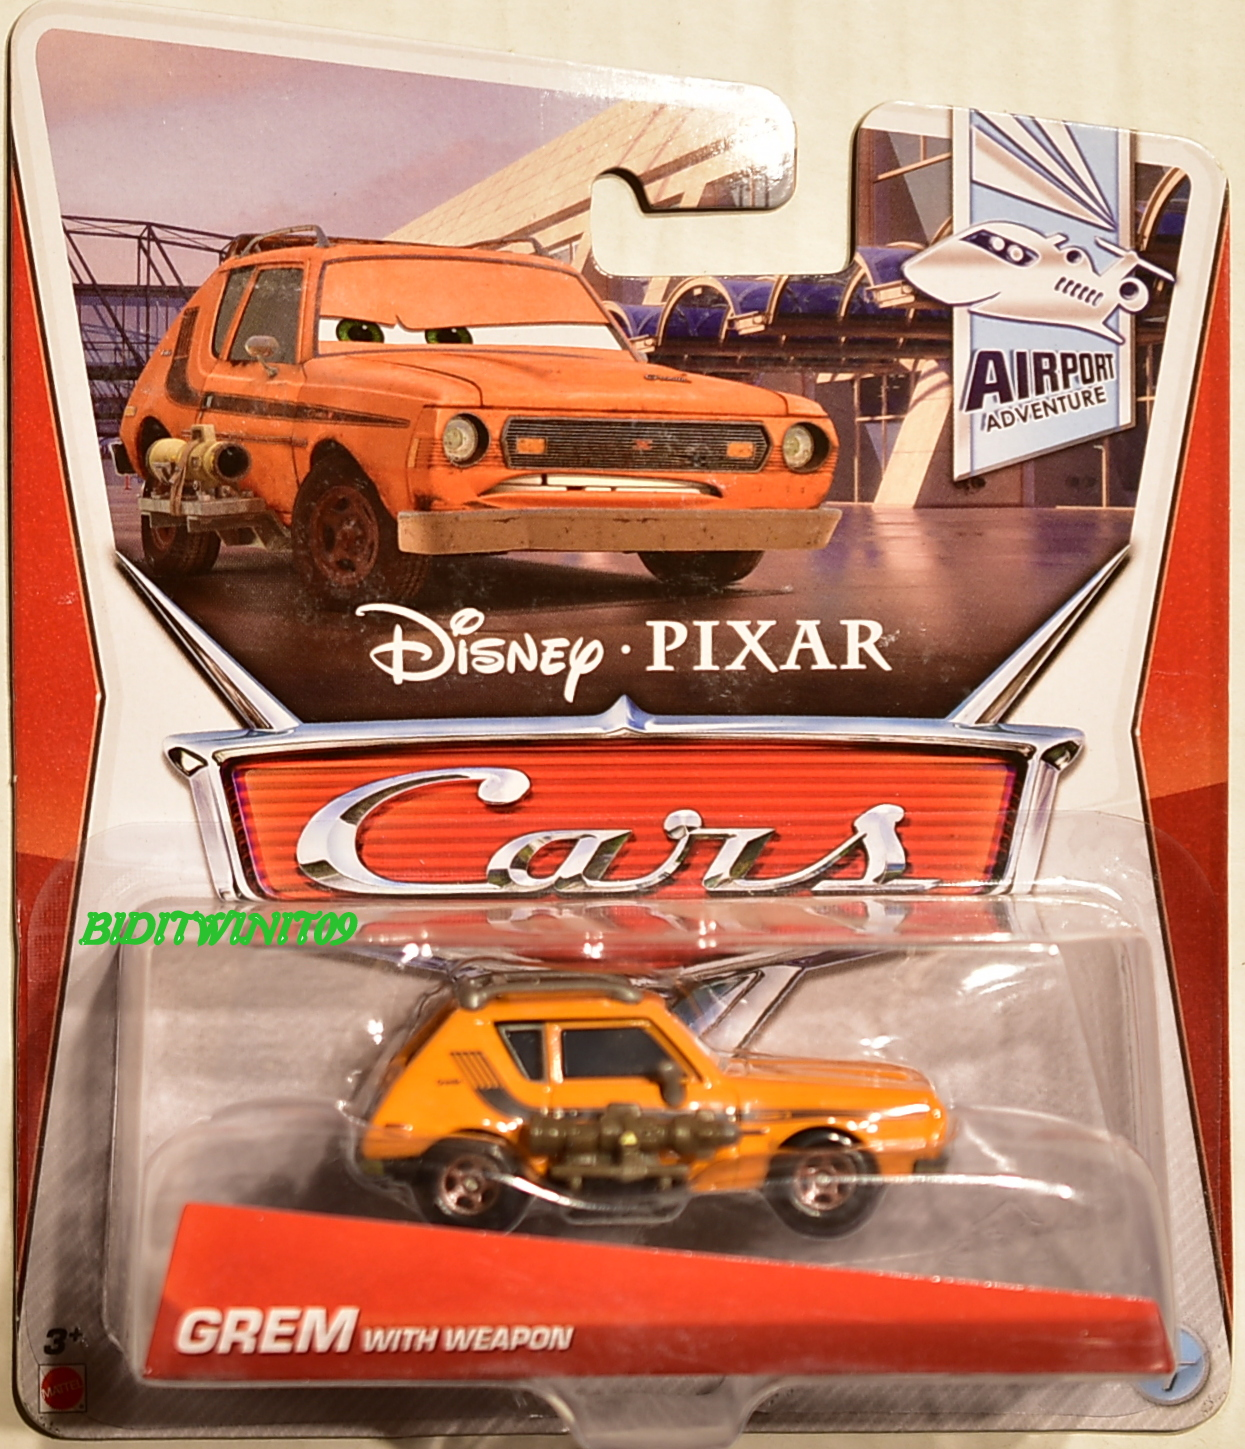 DISNEY PIXAR CARS - 2013 GREM WITH WEAPON - AIRPORT ADVENTURE